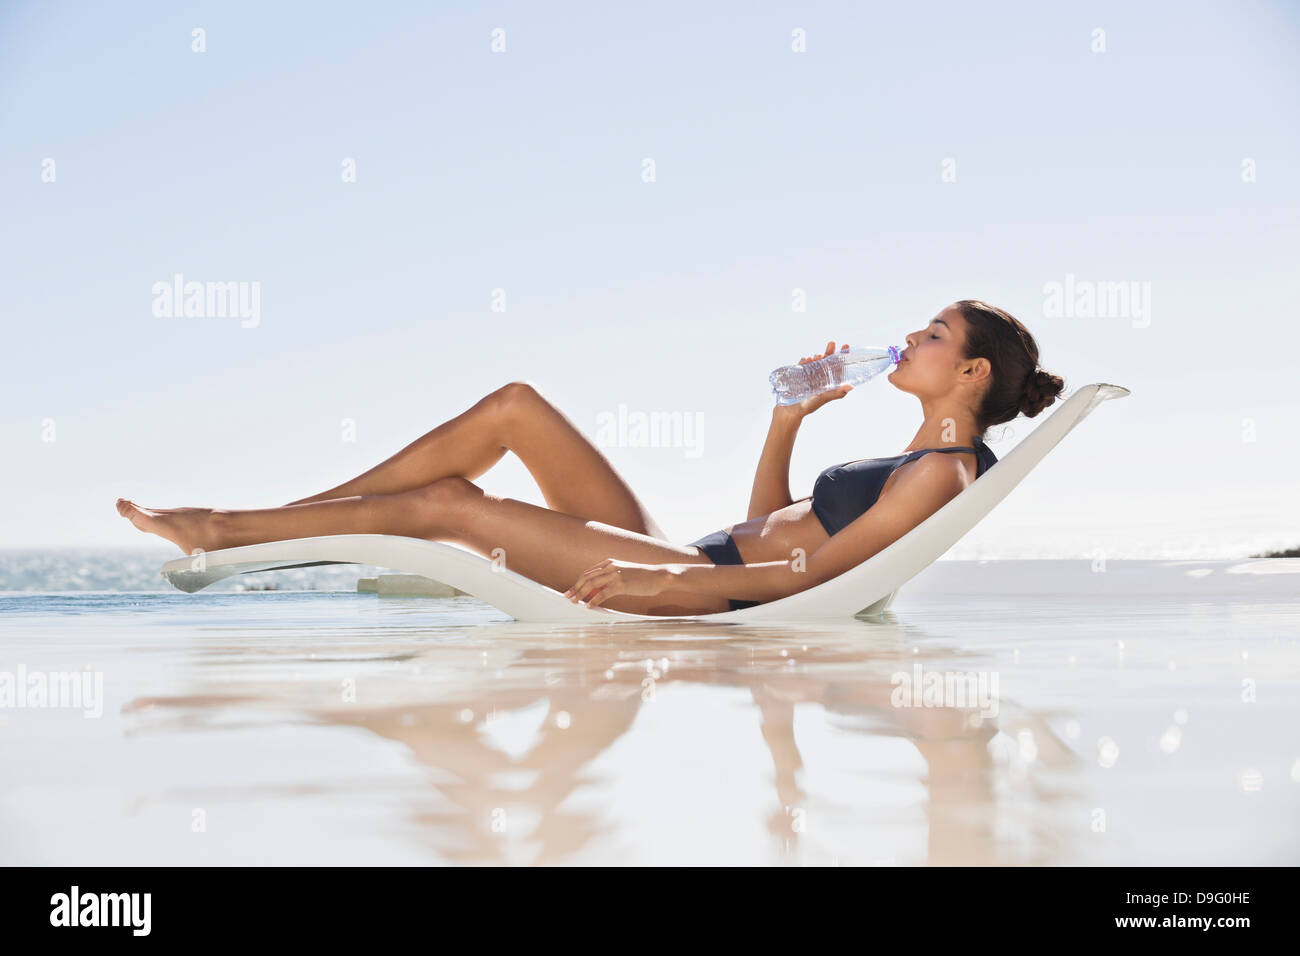 Belle femme l'eau potable sur la plage Photo Stock